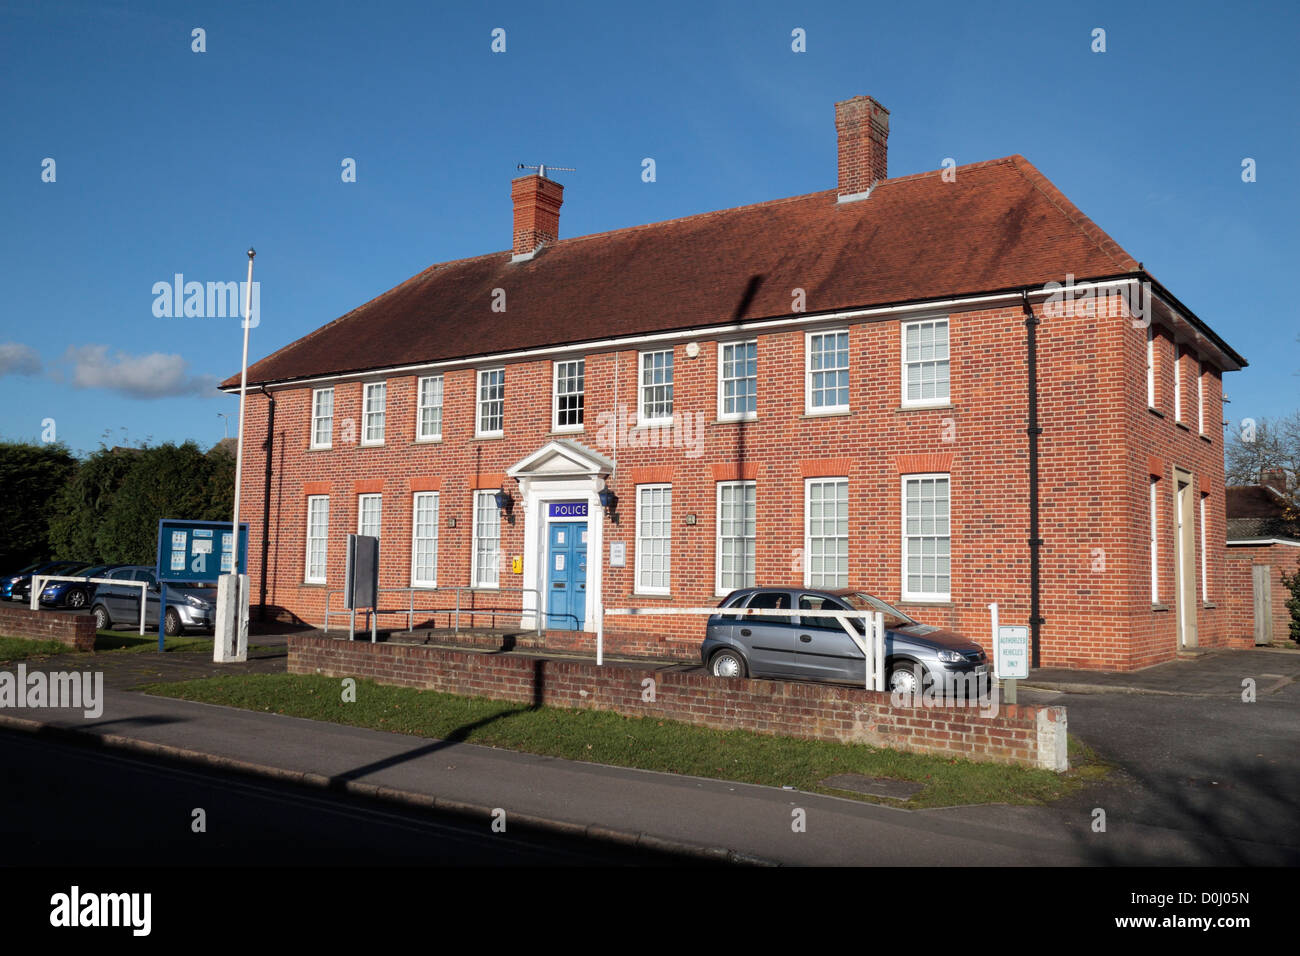 Marlow Police Station (Thames Valley Police) on Dean Street, Marlow, Buckinghamshire, UK. - Stock Image